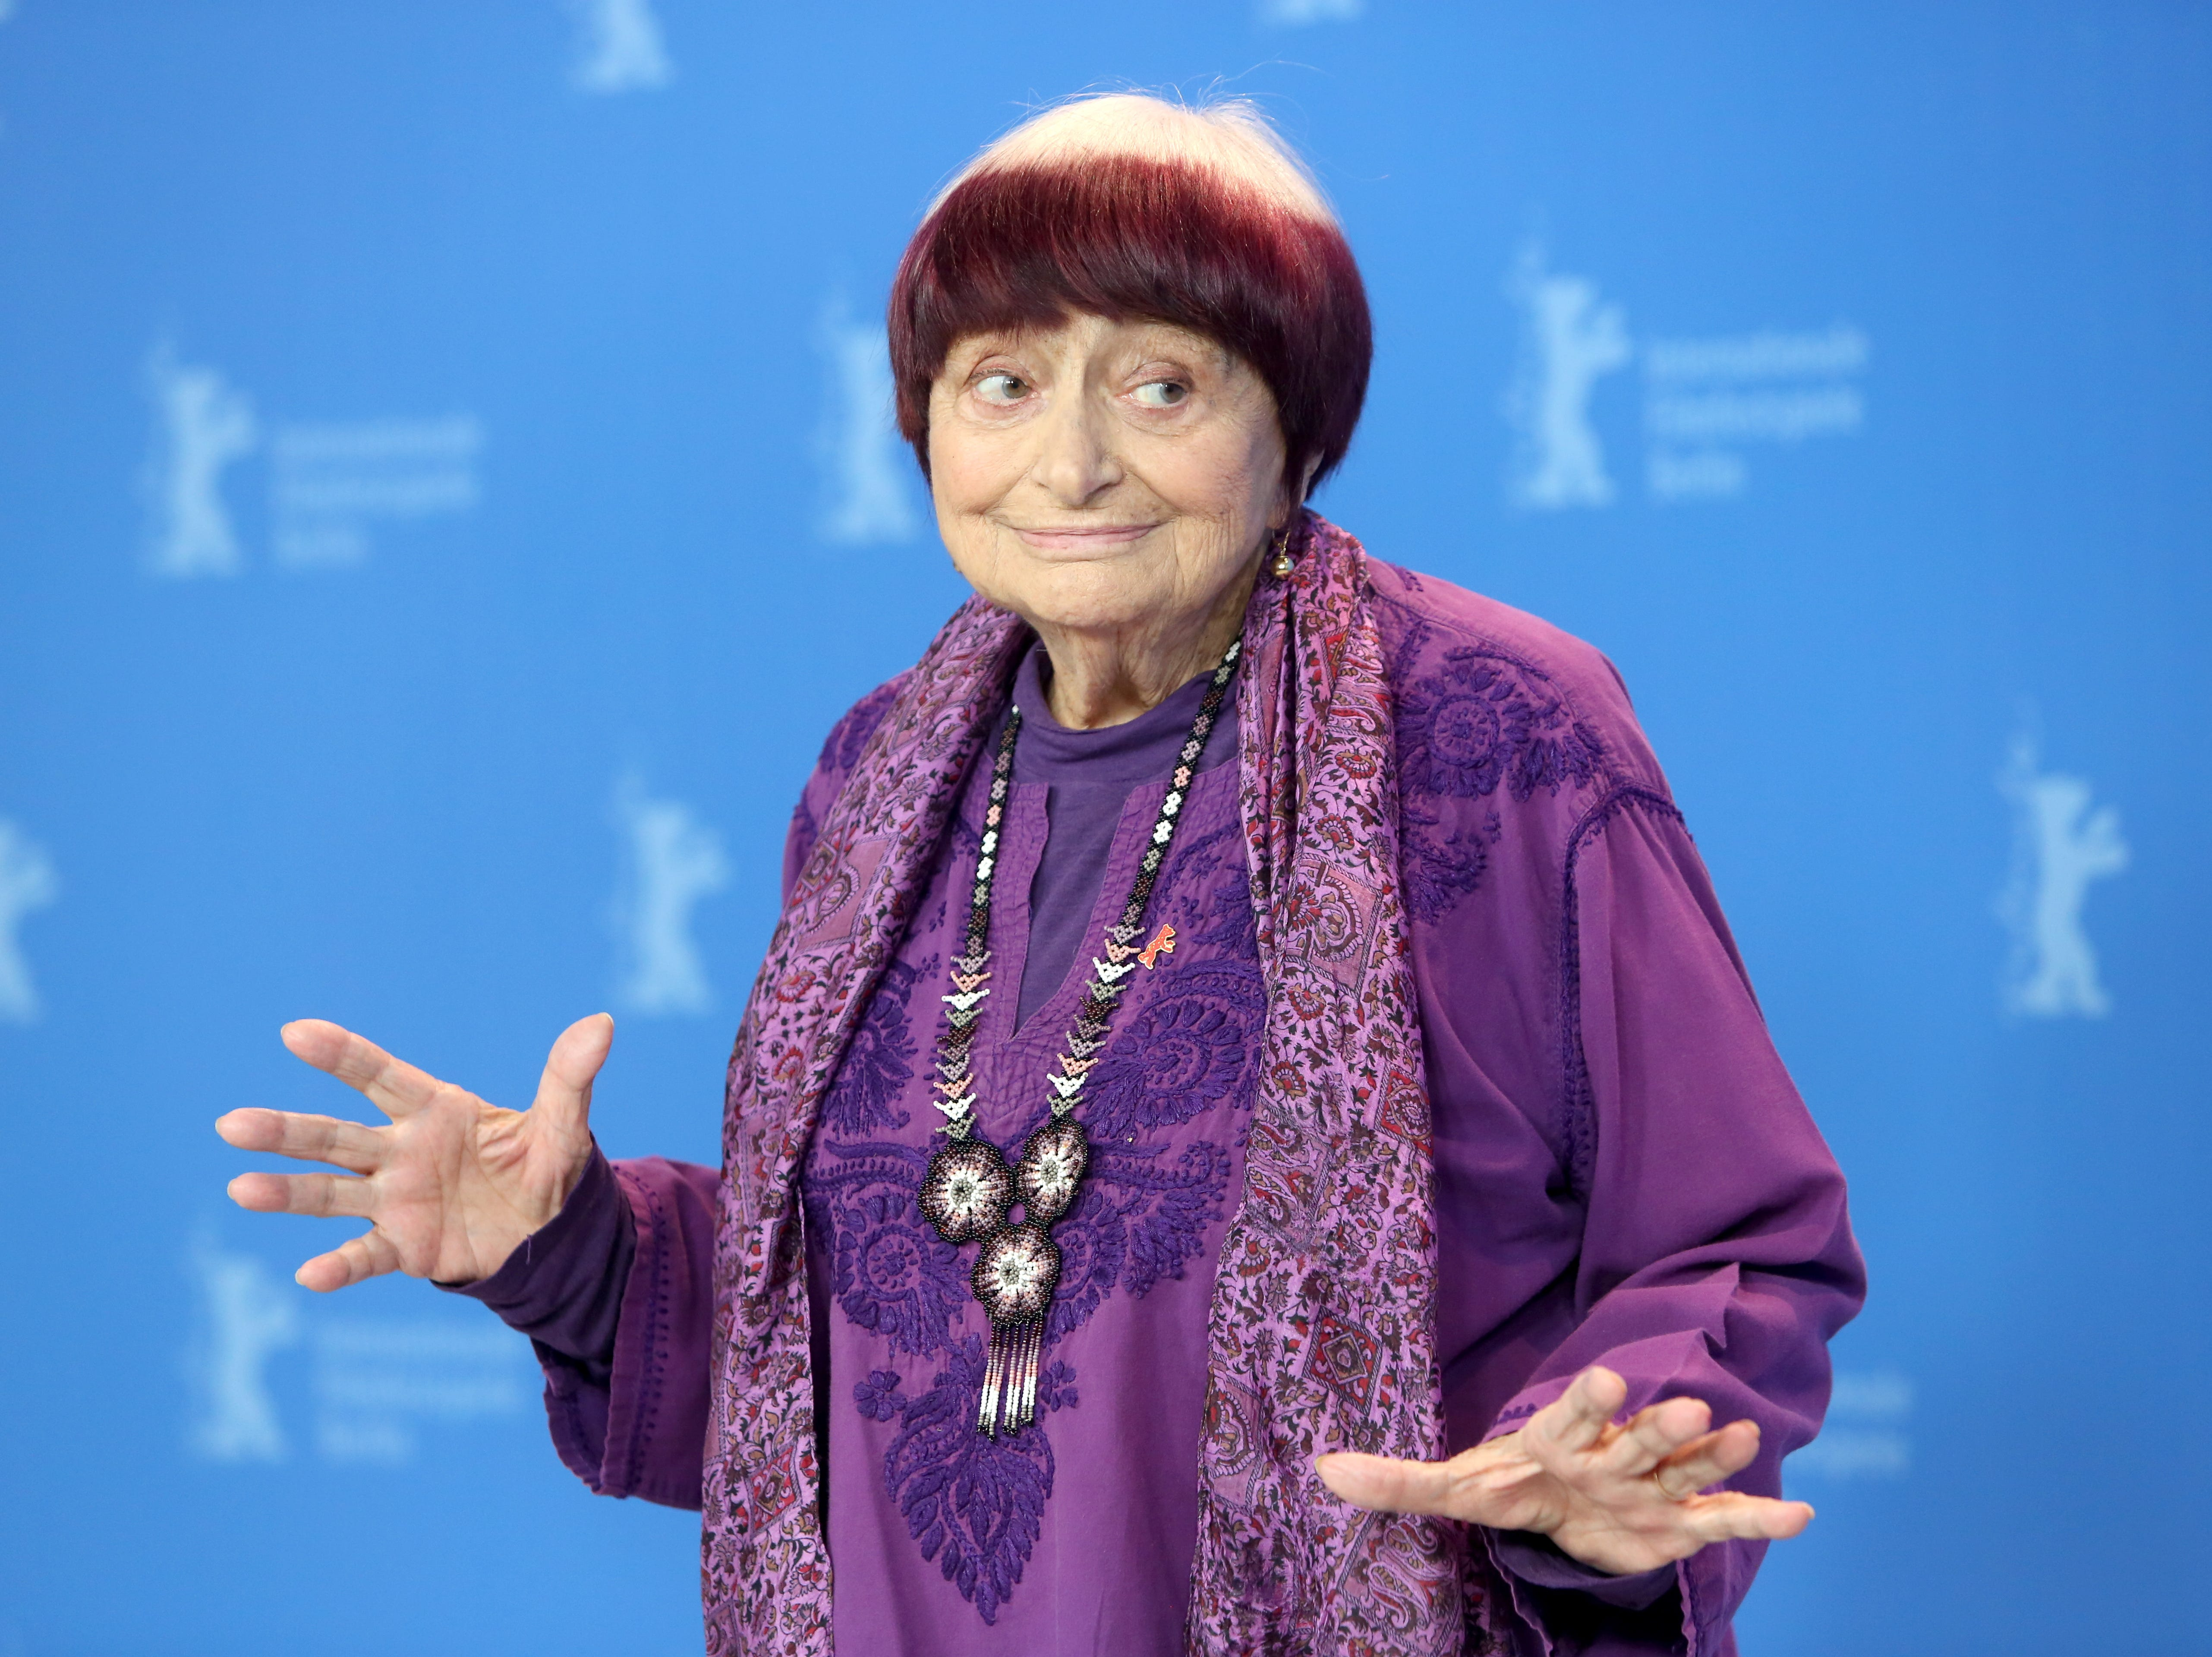 French director Agnes Varda poses during the photocall of 'Varda by Agnes' (Varda par Agnes) during the 69th annual Berlin Film Festival, in Berlin, Germany on Feb. 13, 2019. Filmmaker Agnes Varda, a central figure of the French New Wave who later won the Golden Lion at the Venice Film Festival, has died. She was 90.